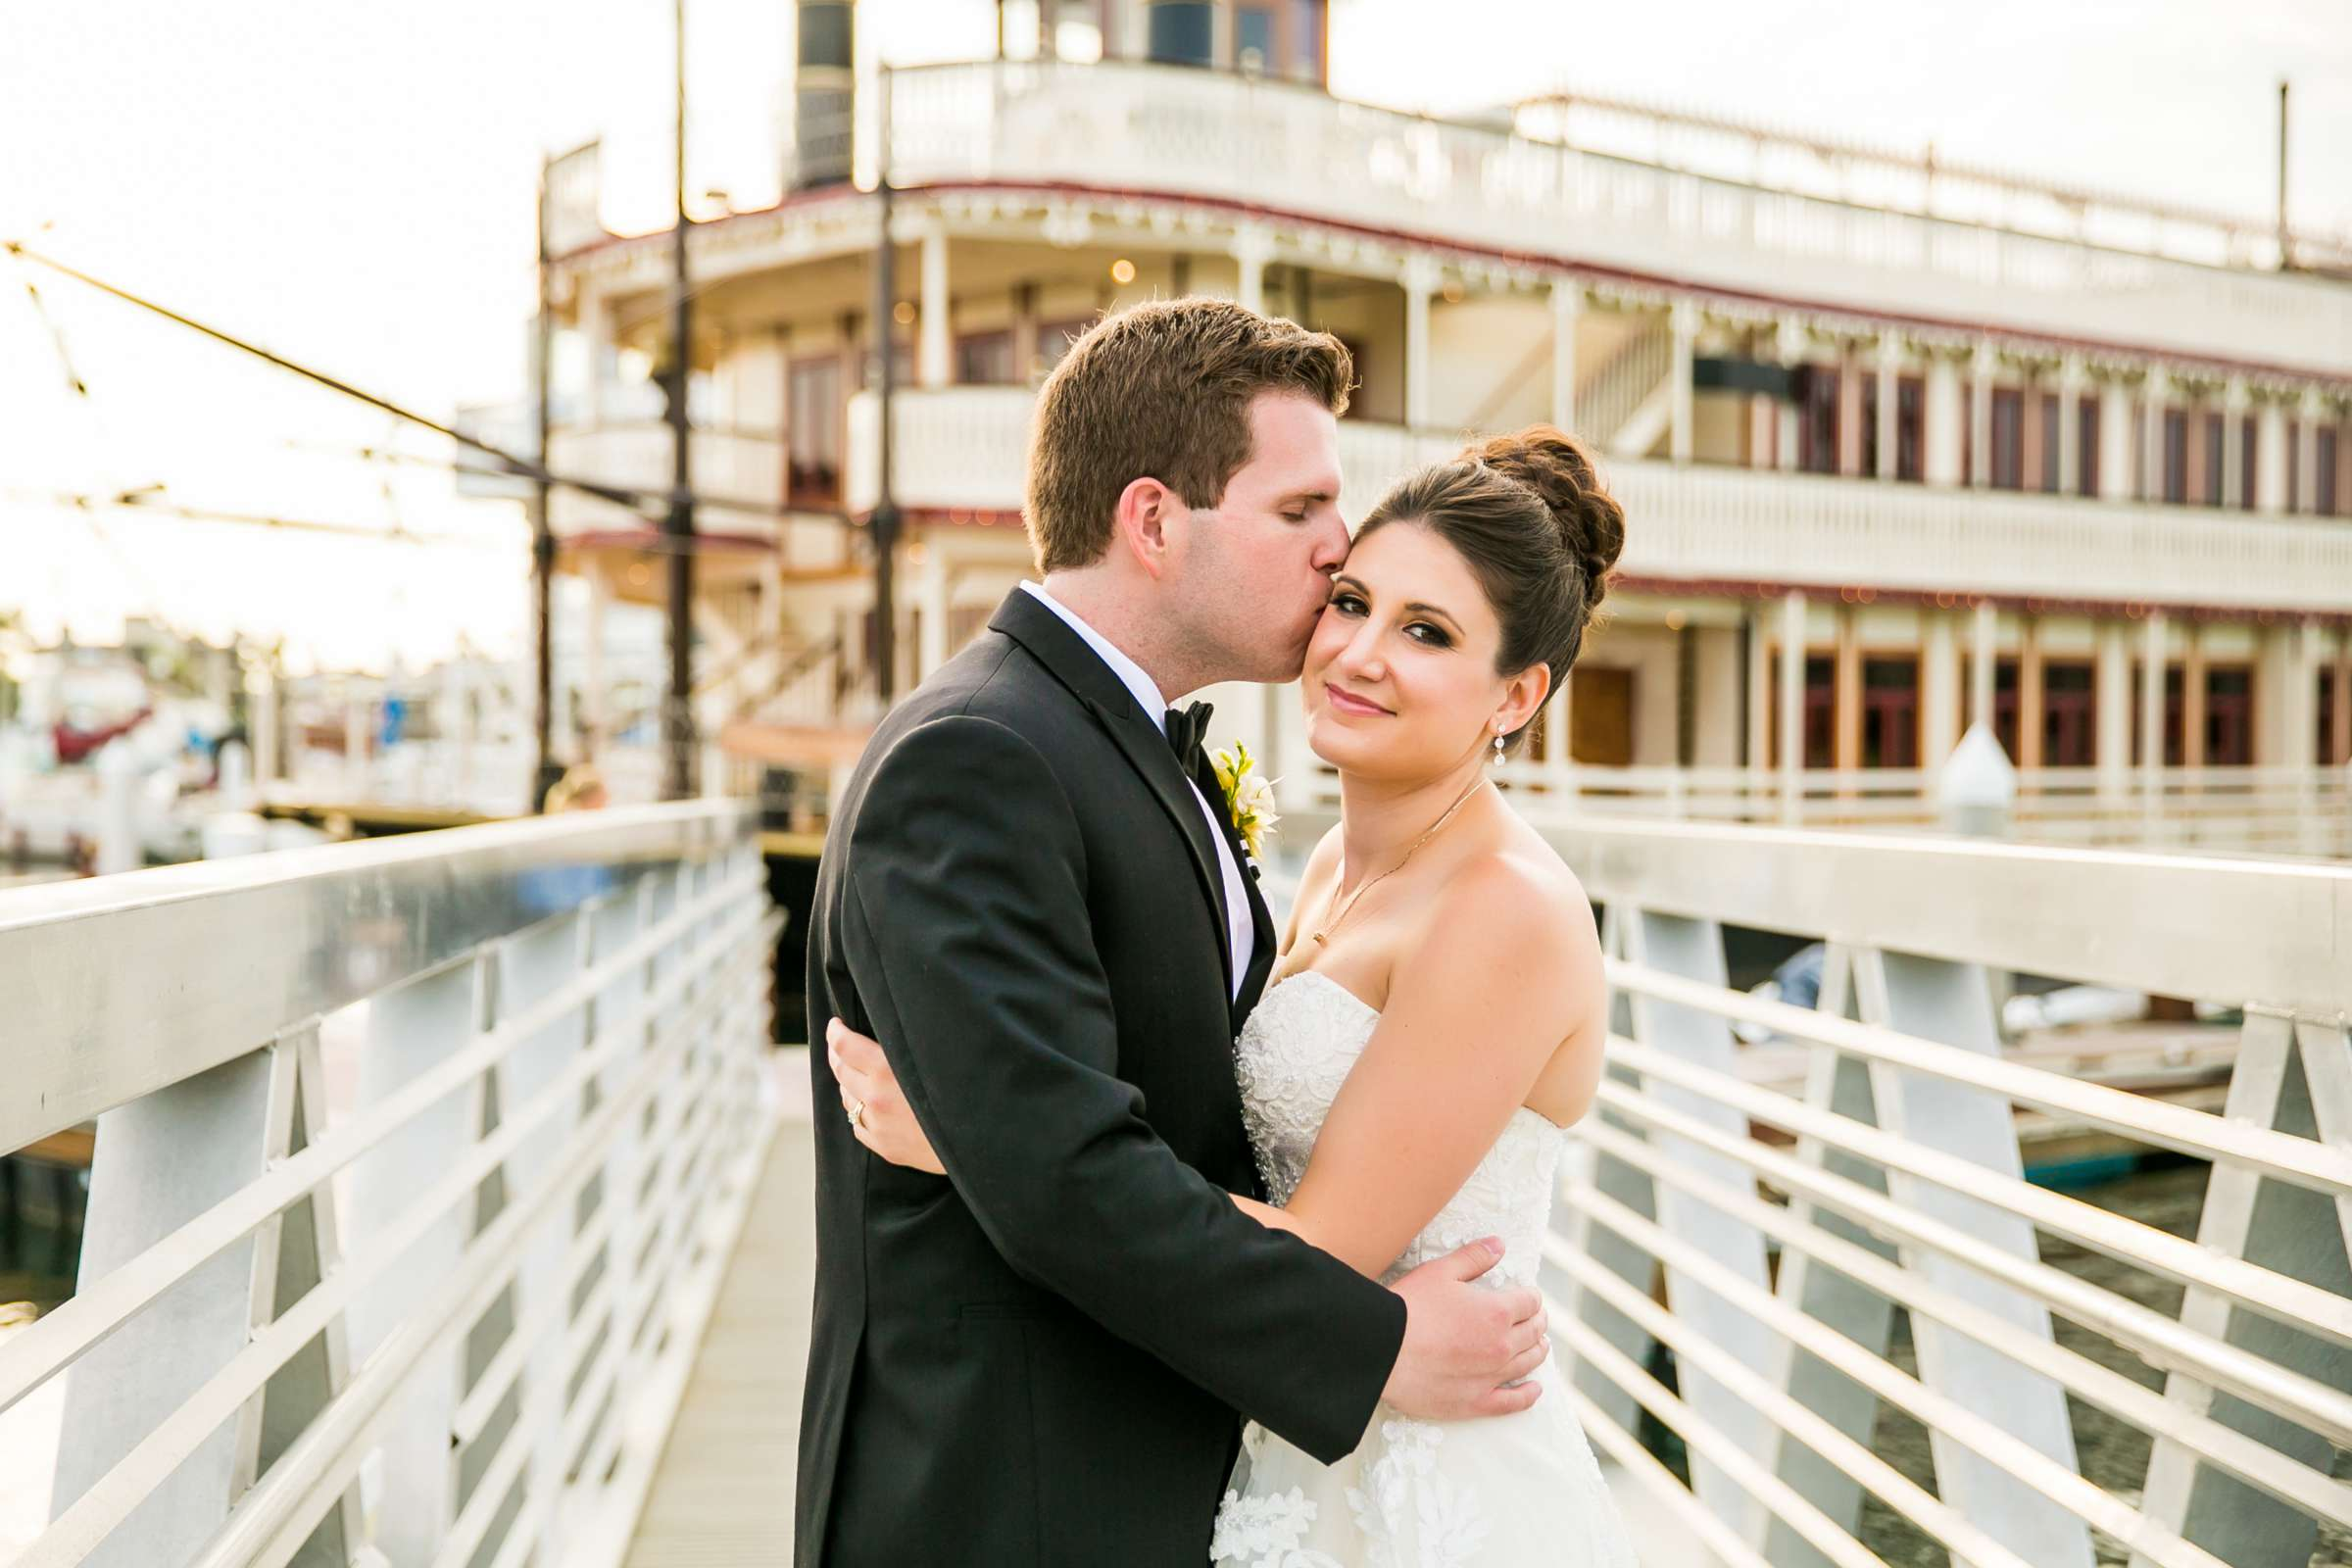 Bahia Hotel Wedding coordinated by I Do Weddings, Meredith and Jack Wedding Photo #69 by True Photography